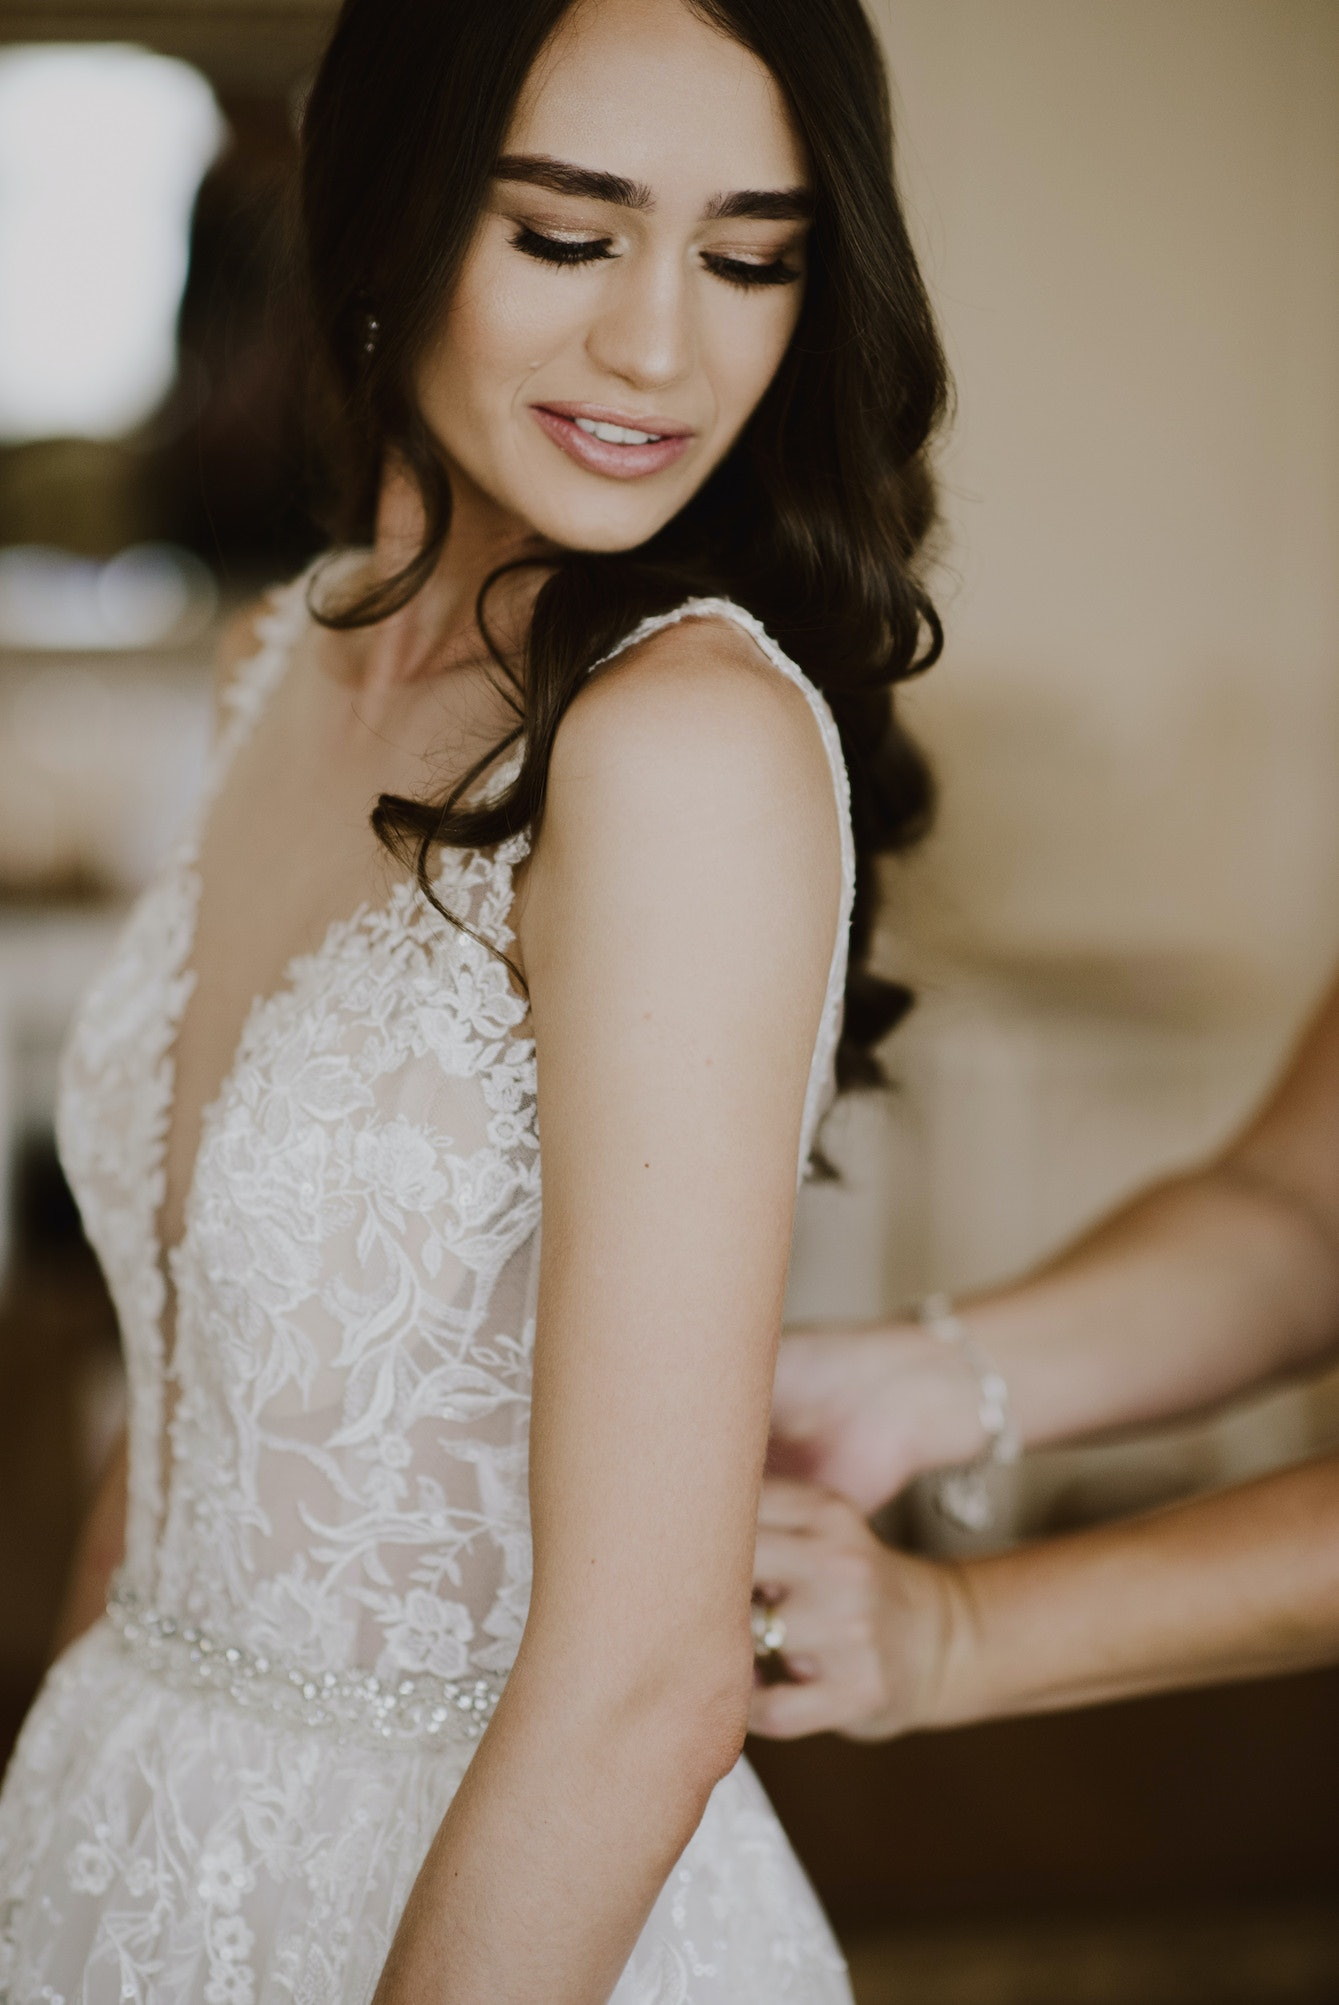 Bride in wedding dress with makeup on